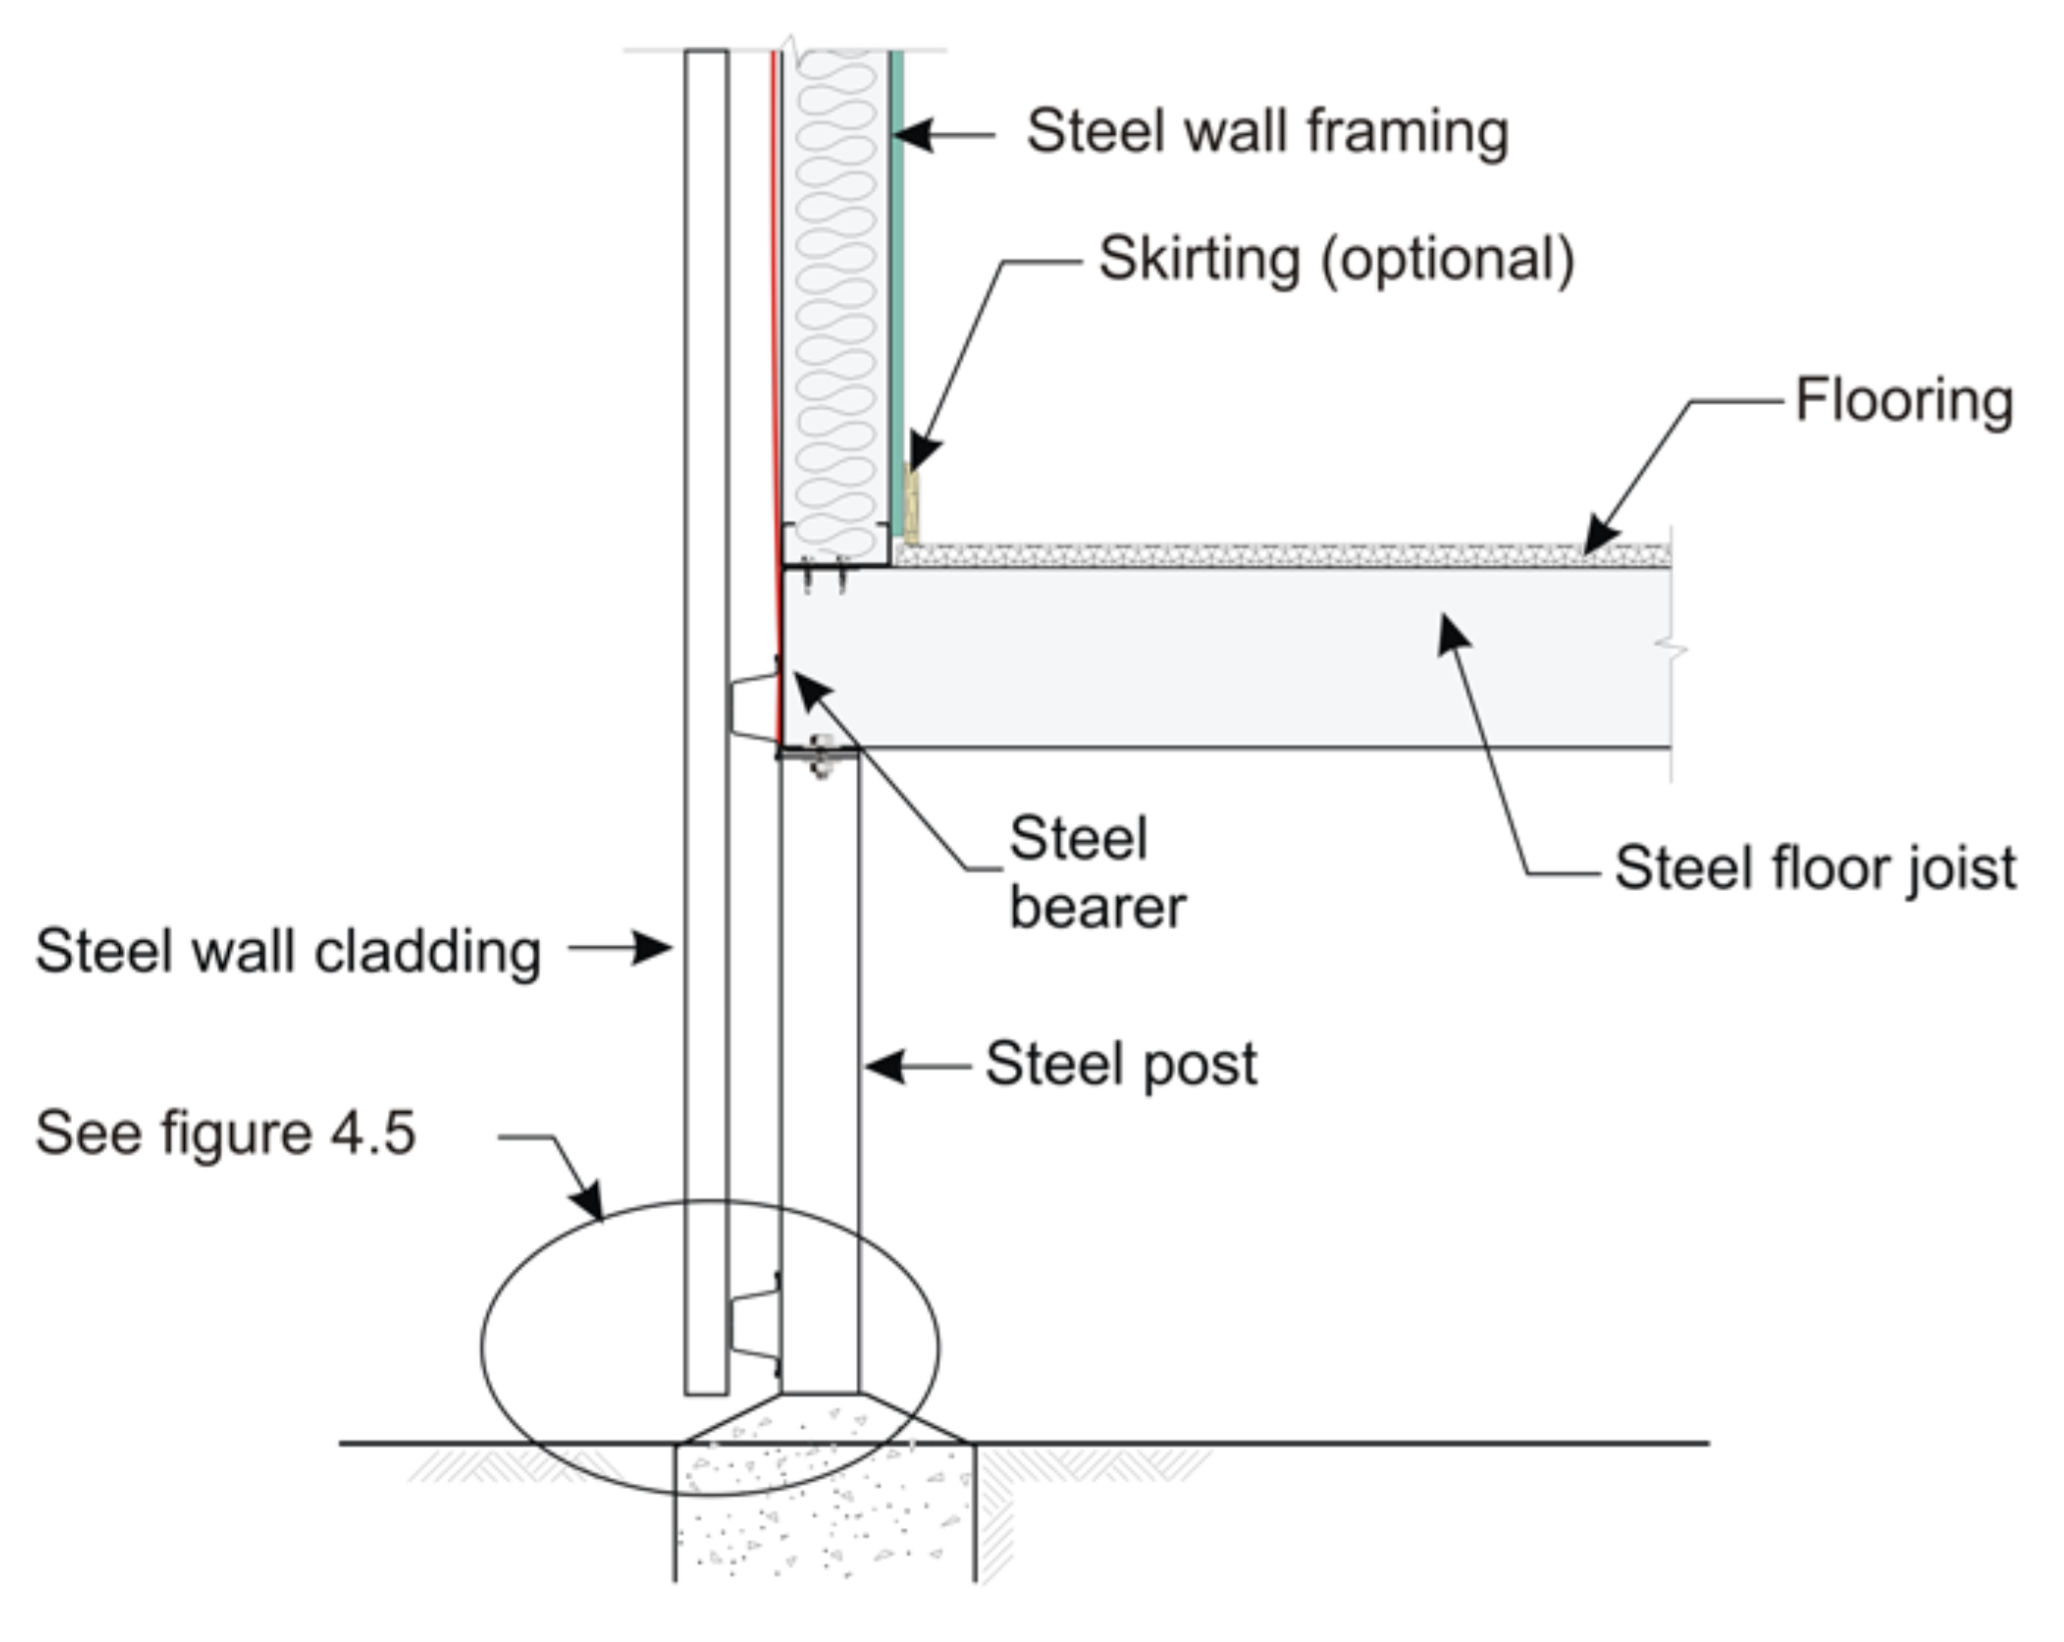 Diagram of steel cladding of external wall constructed of steel wall framing and steeljoist and bearer floorframe